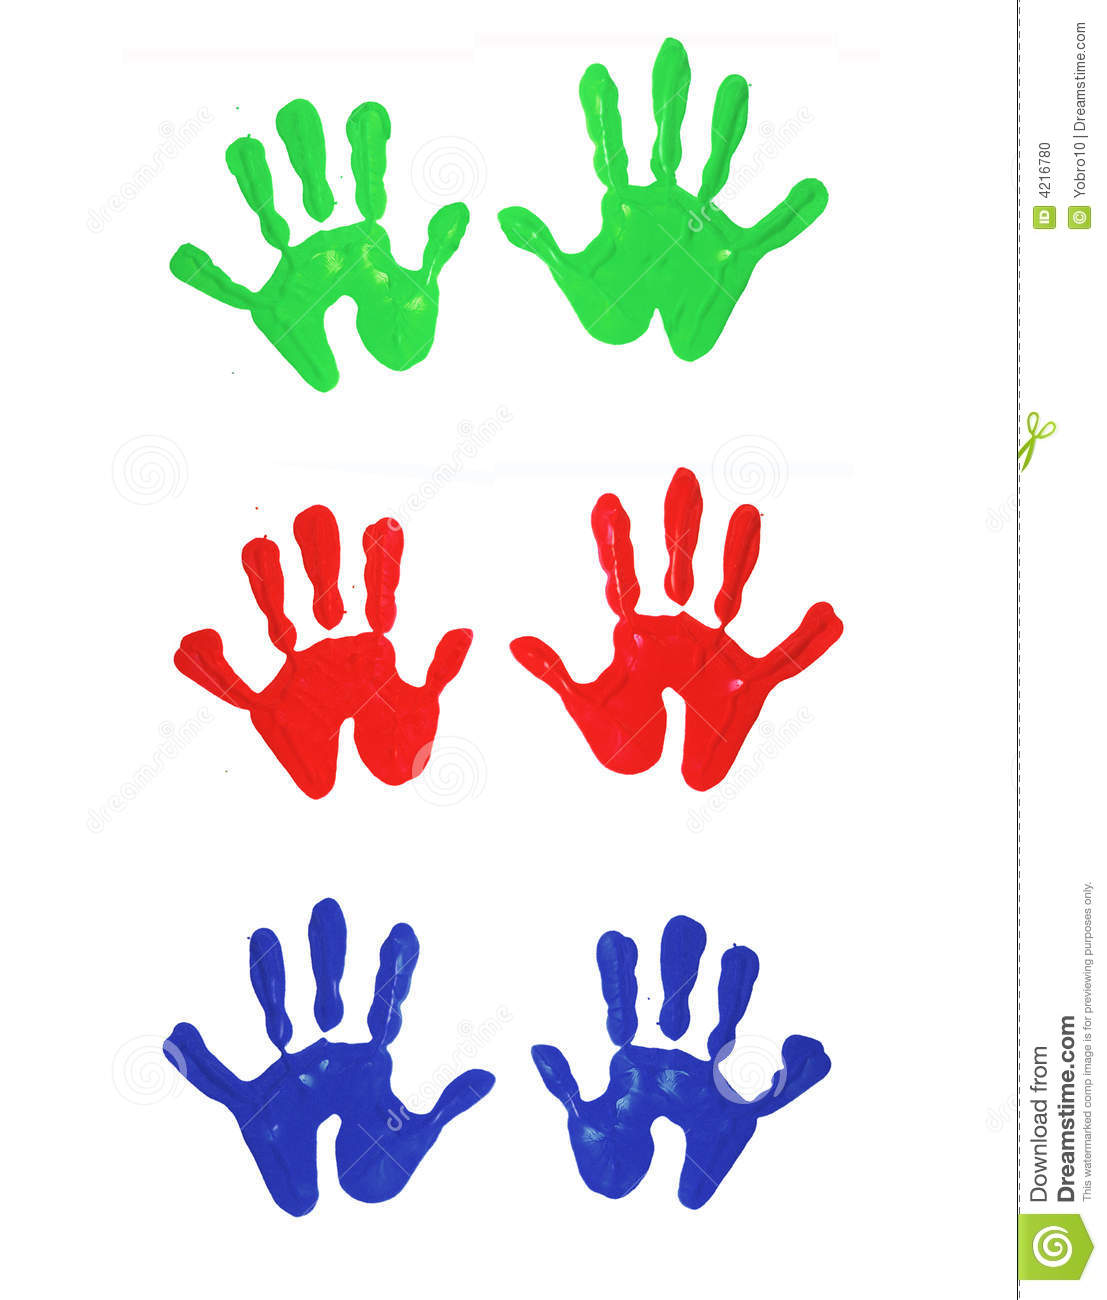 Excellent hand print vector photos